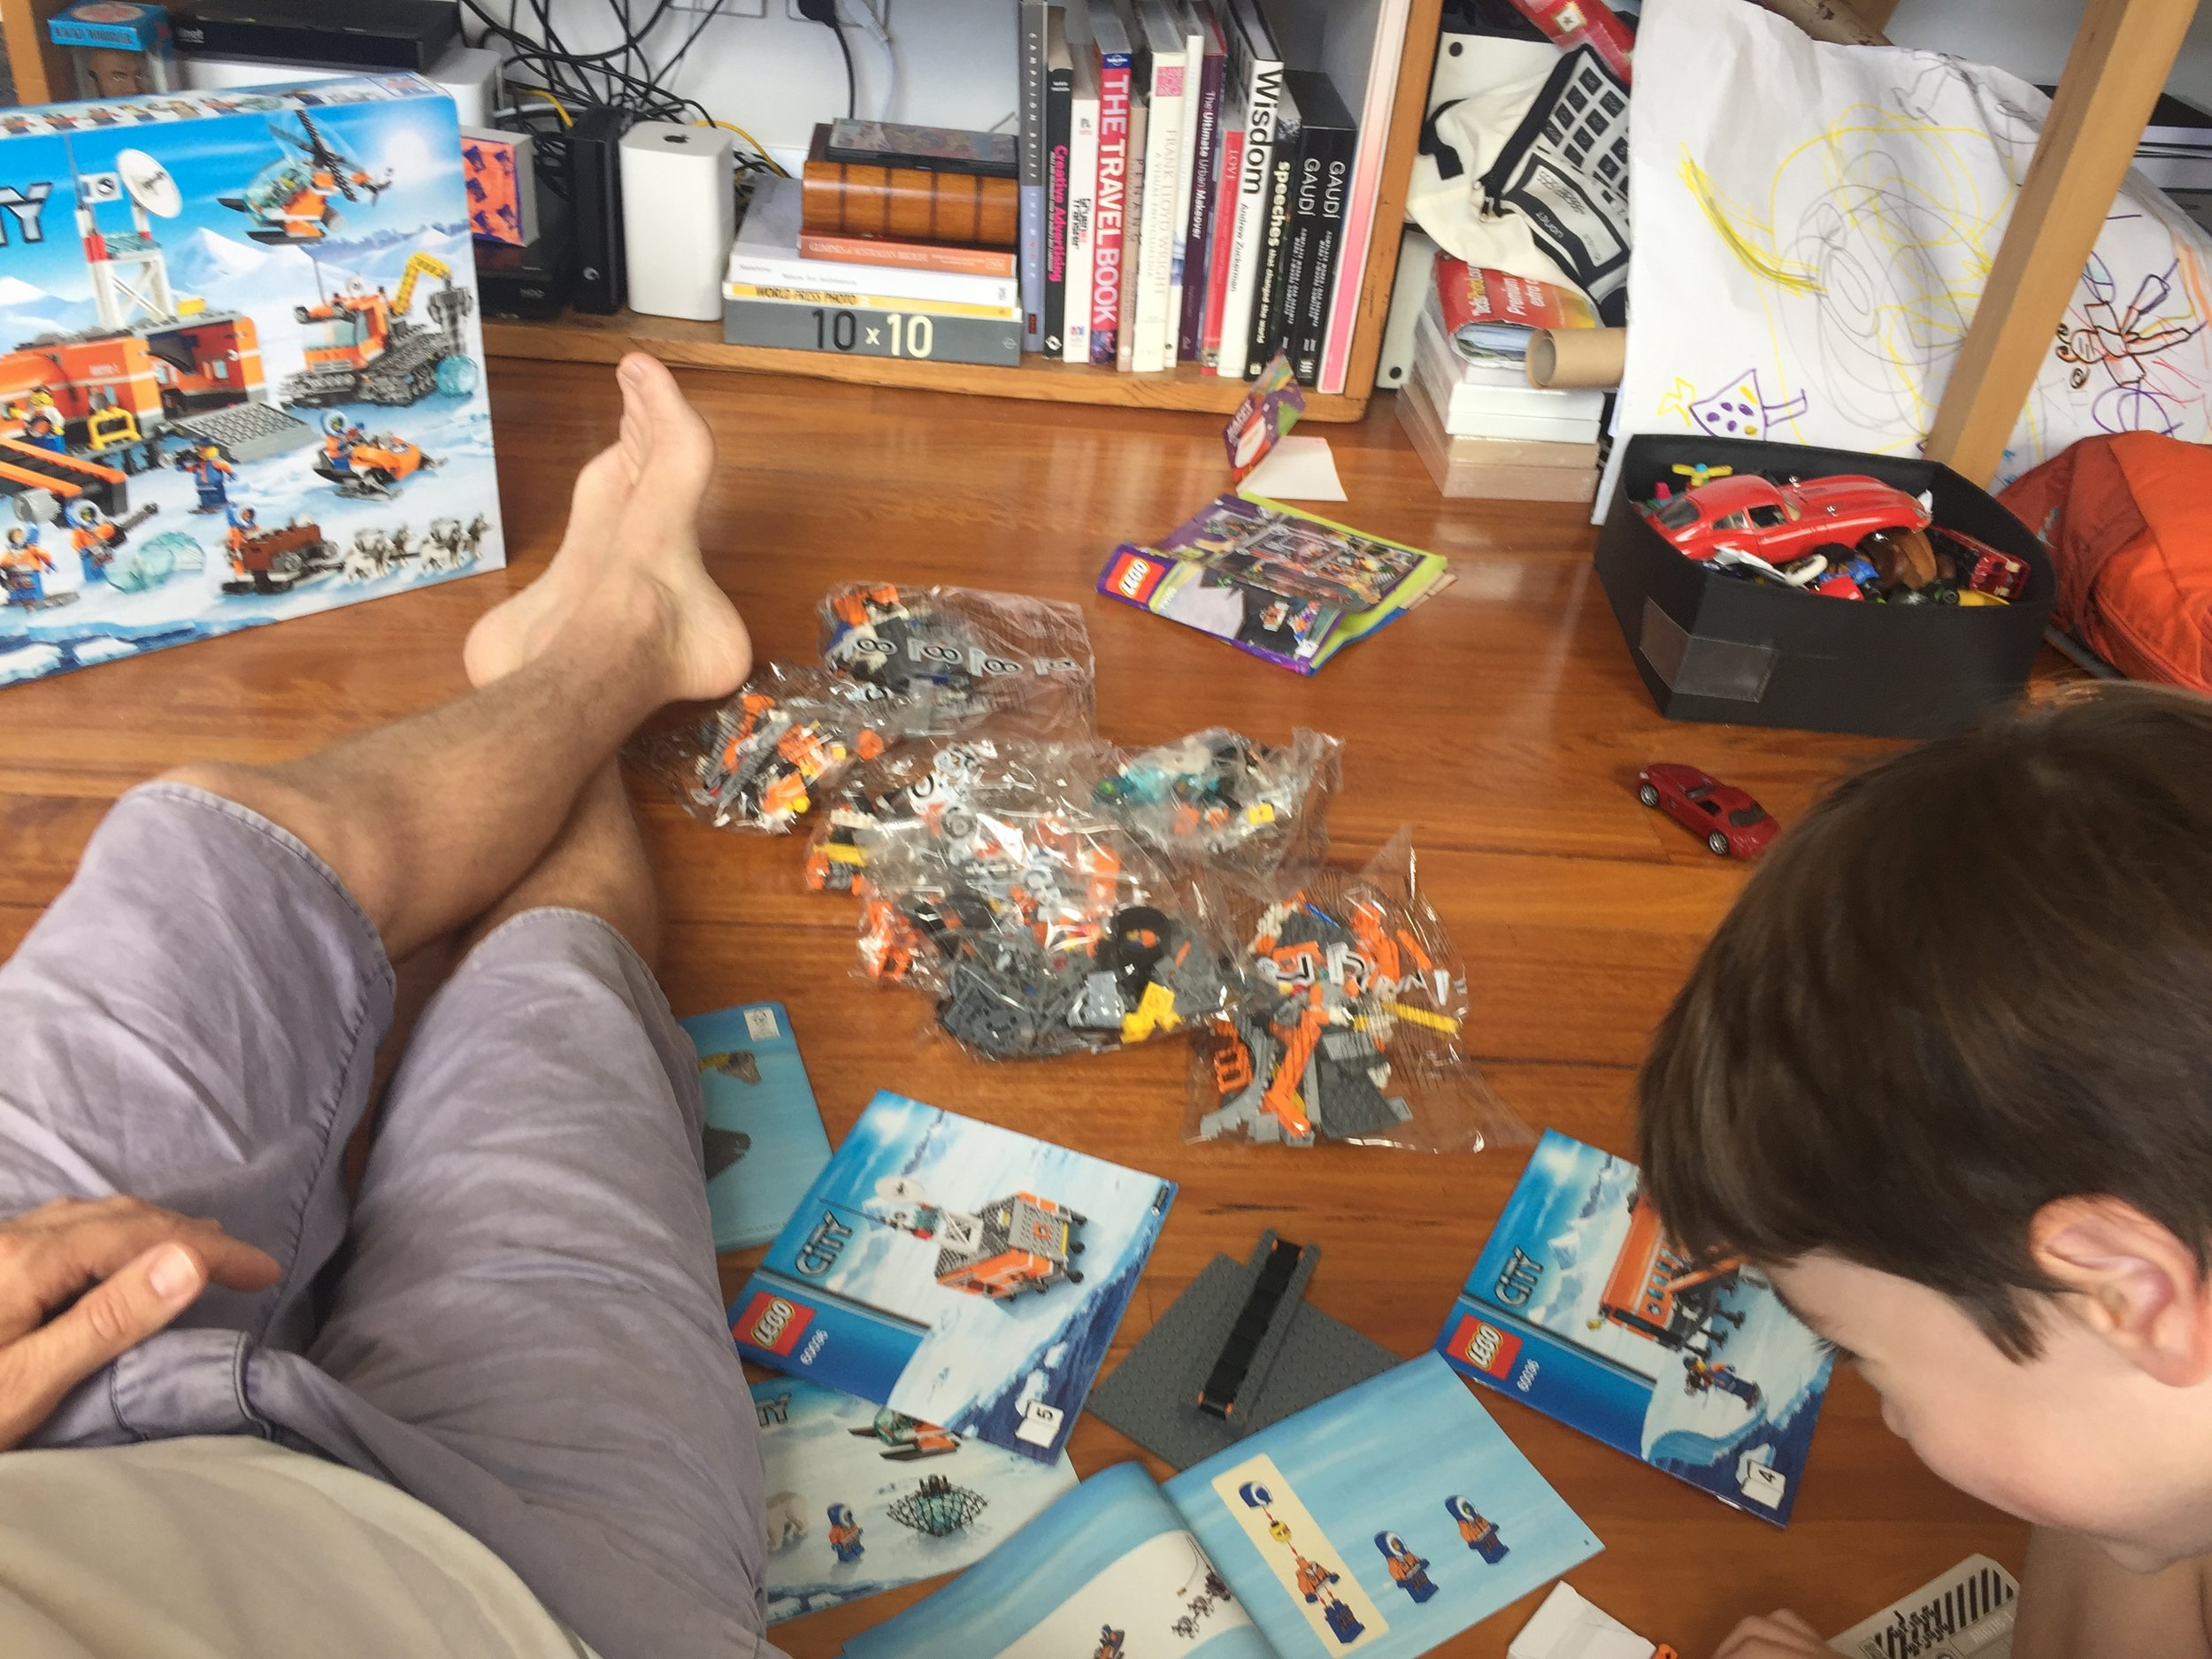 Lost in Lego